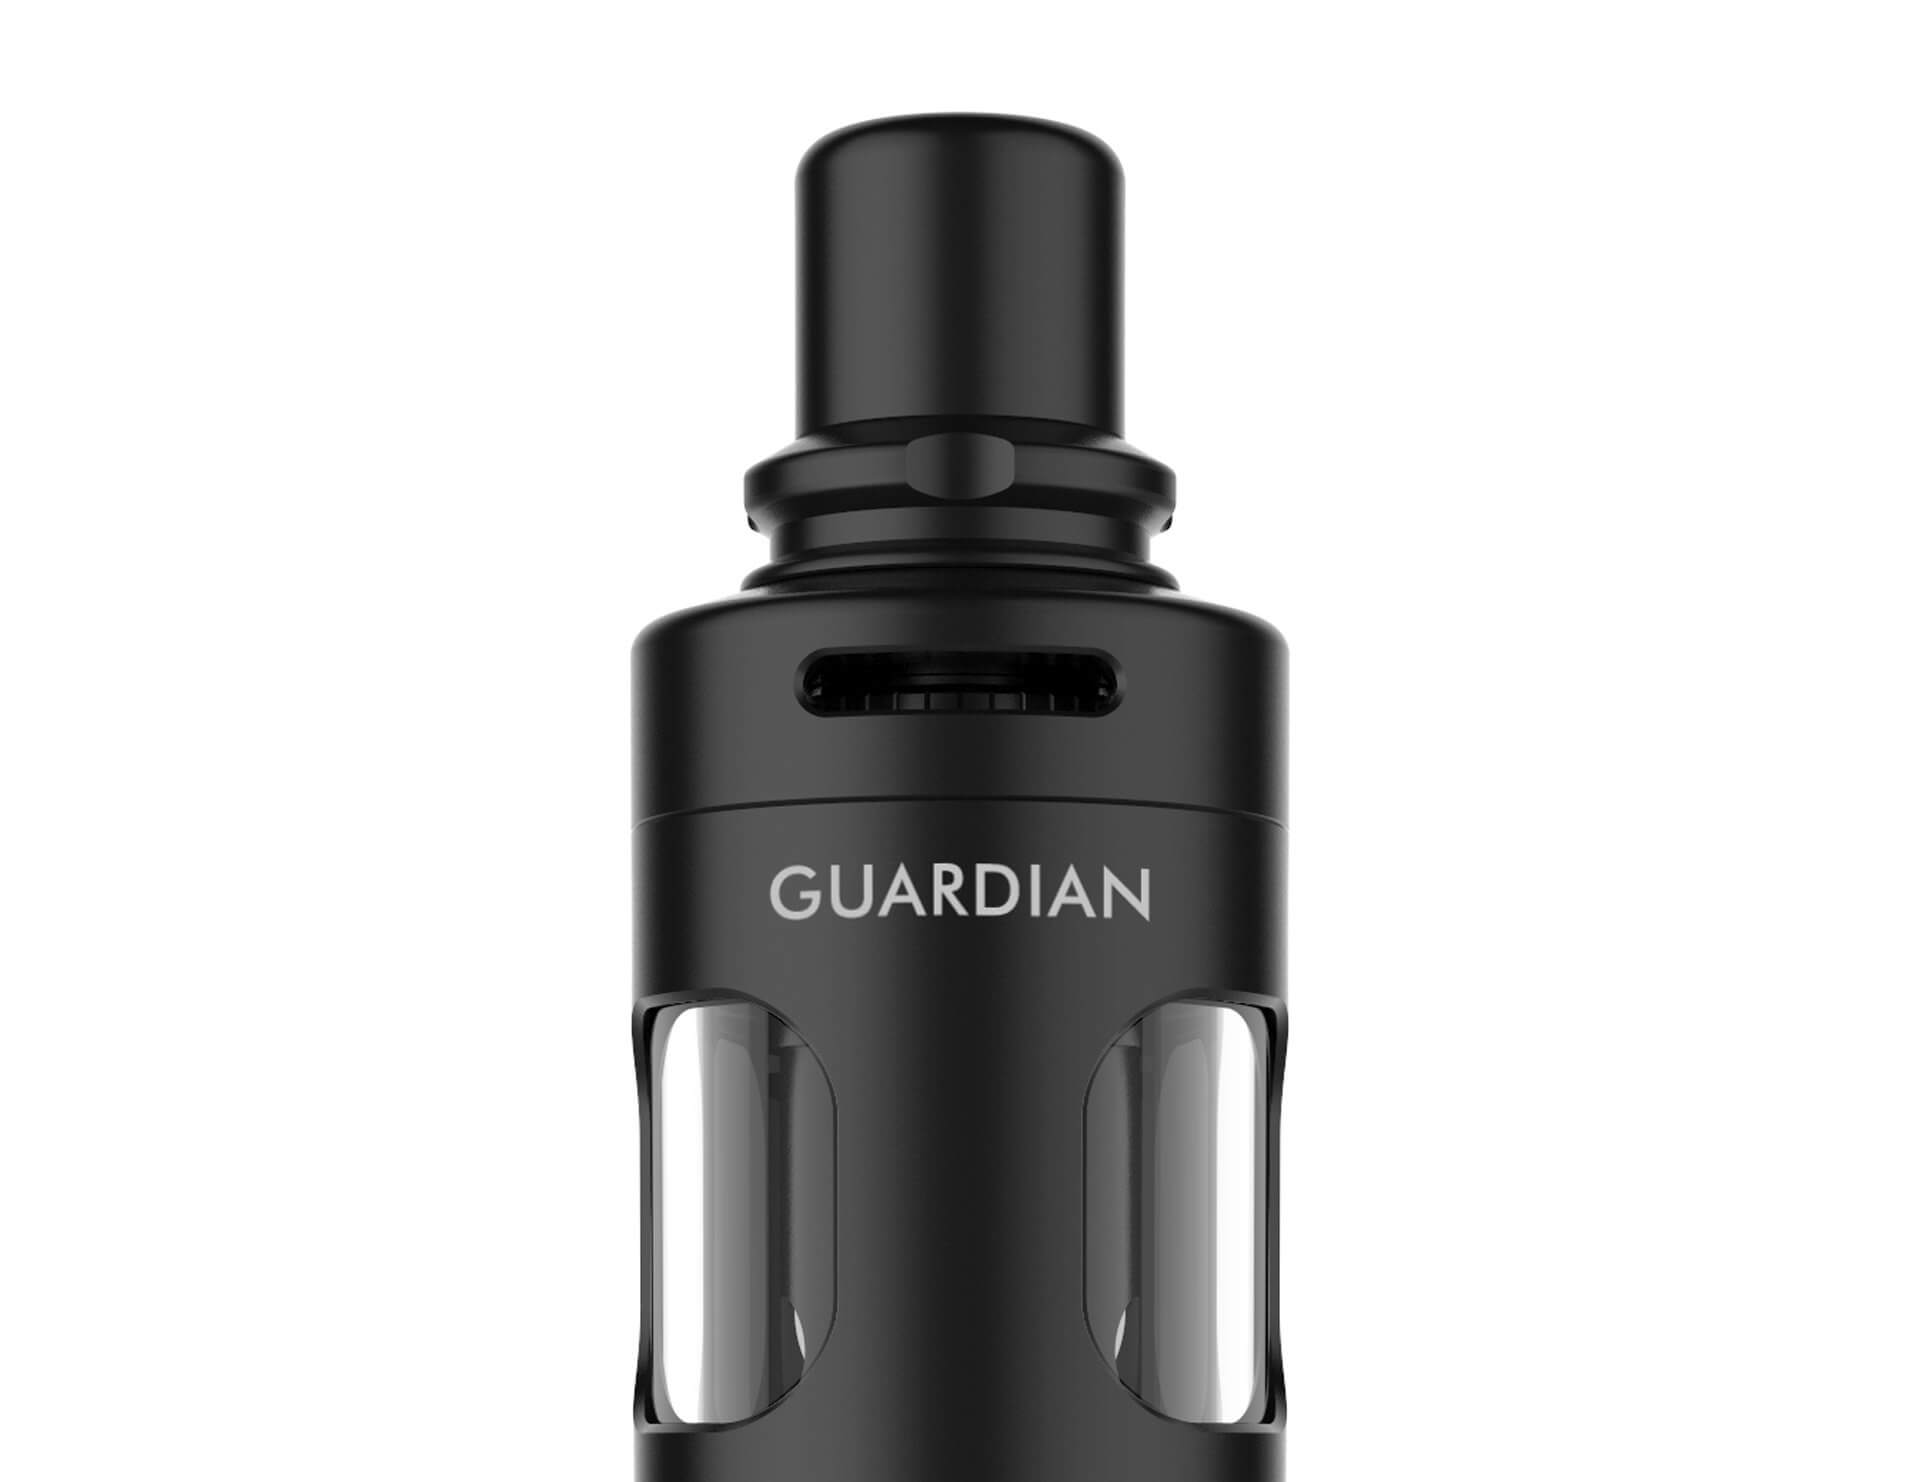 vaporesso_guardian_one_6.jpg